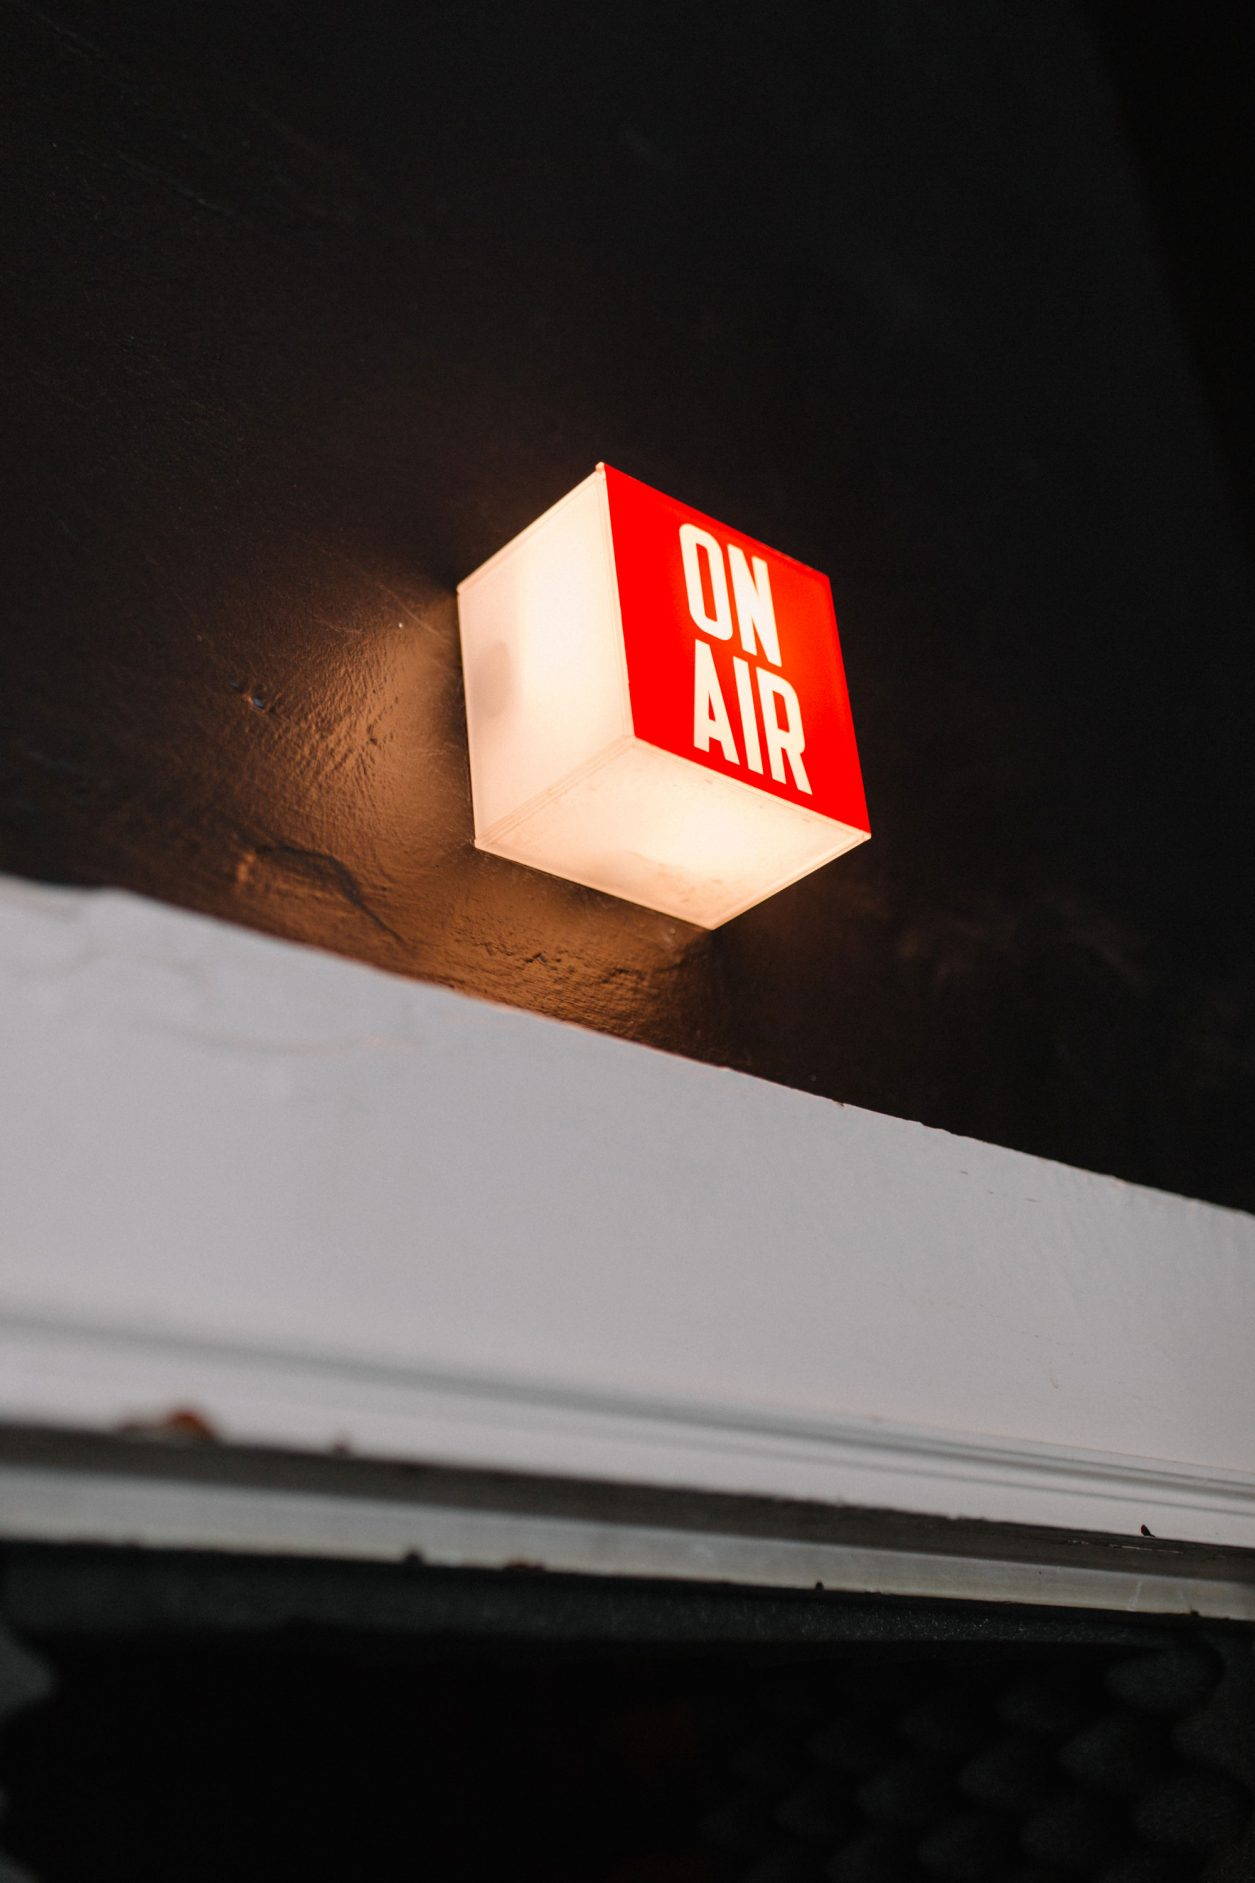 on air sign - voice studio